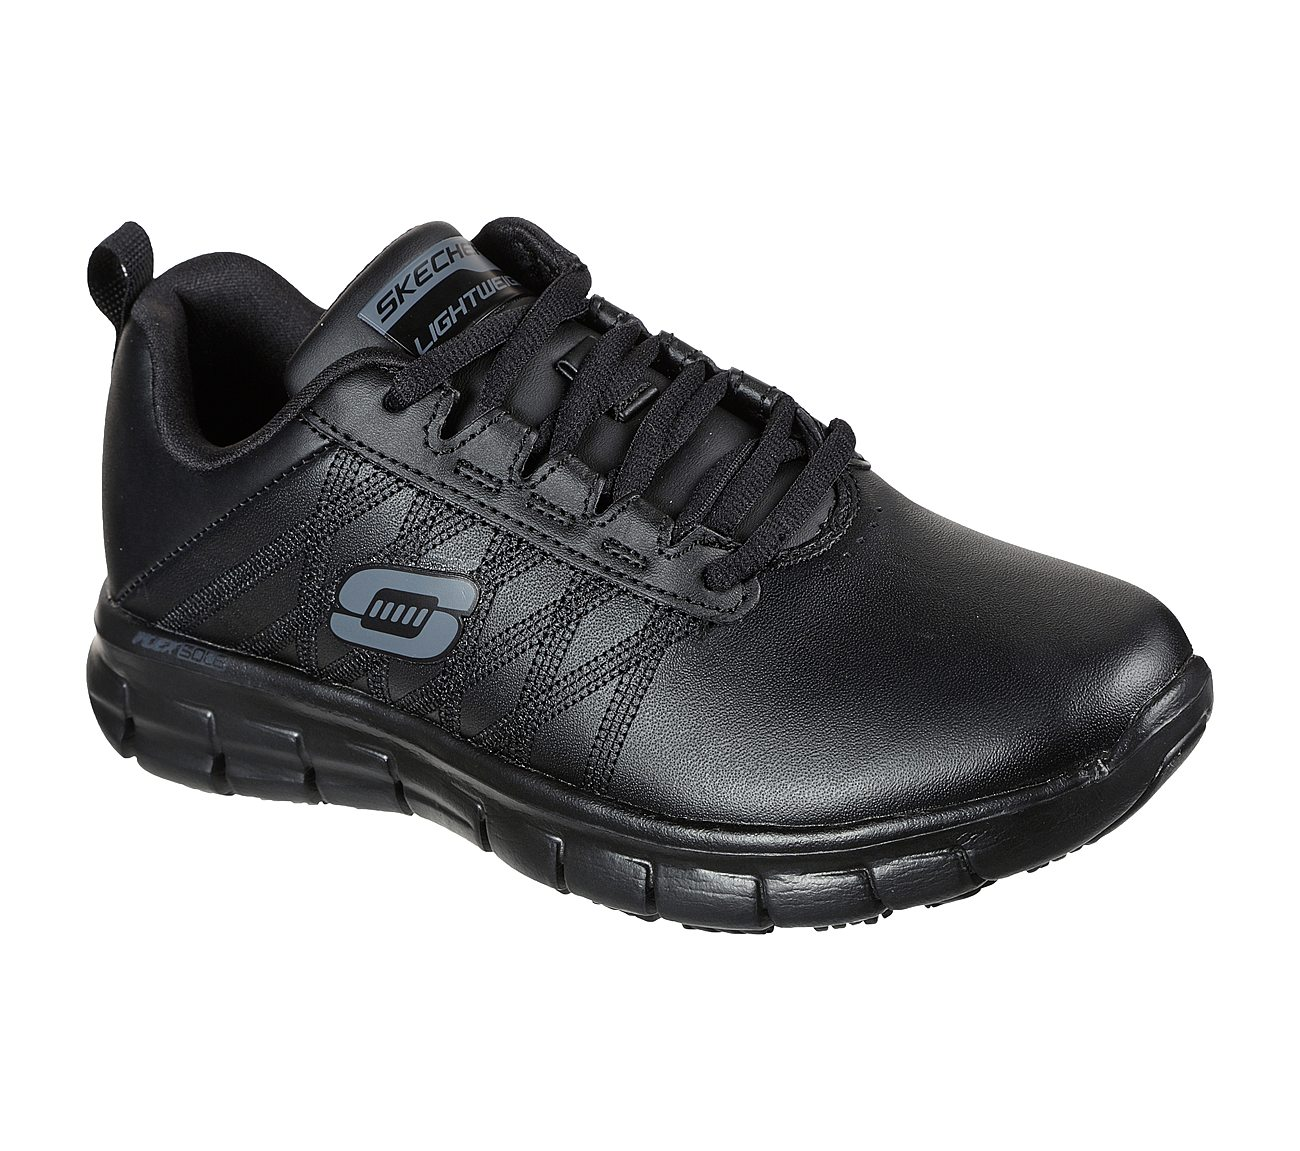 Designer Skechers Work Comfort Flex Sr Hc Black Shoes